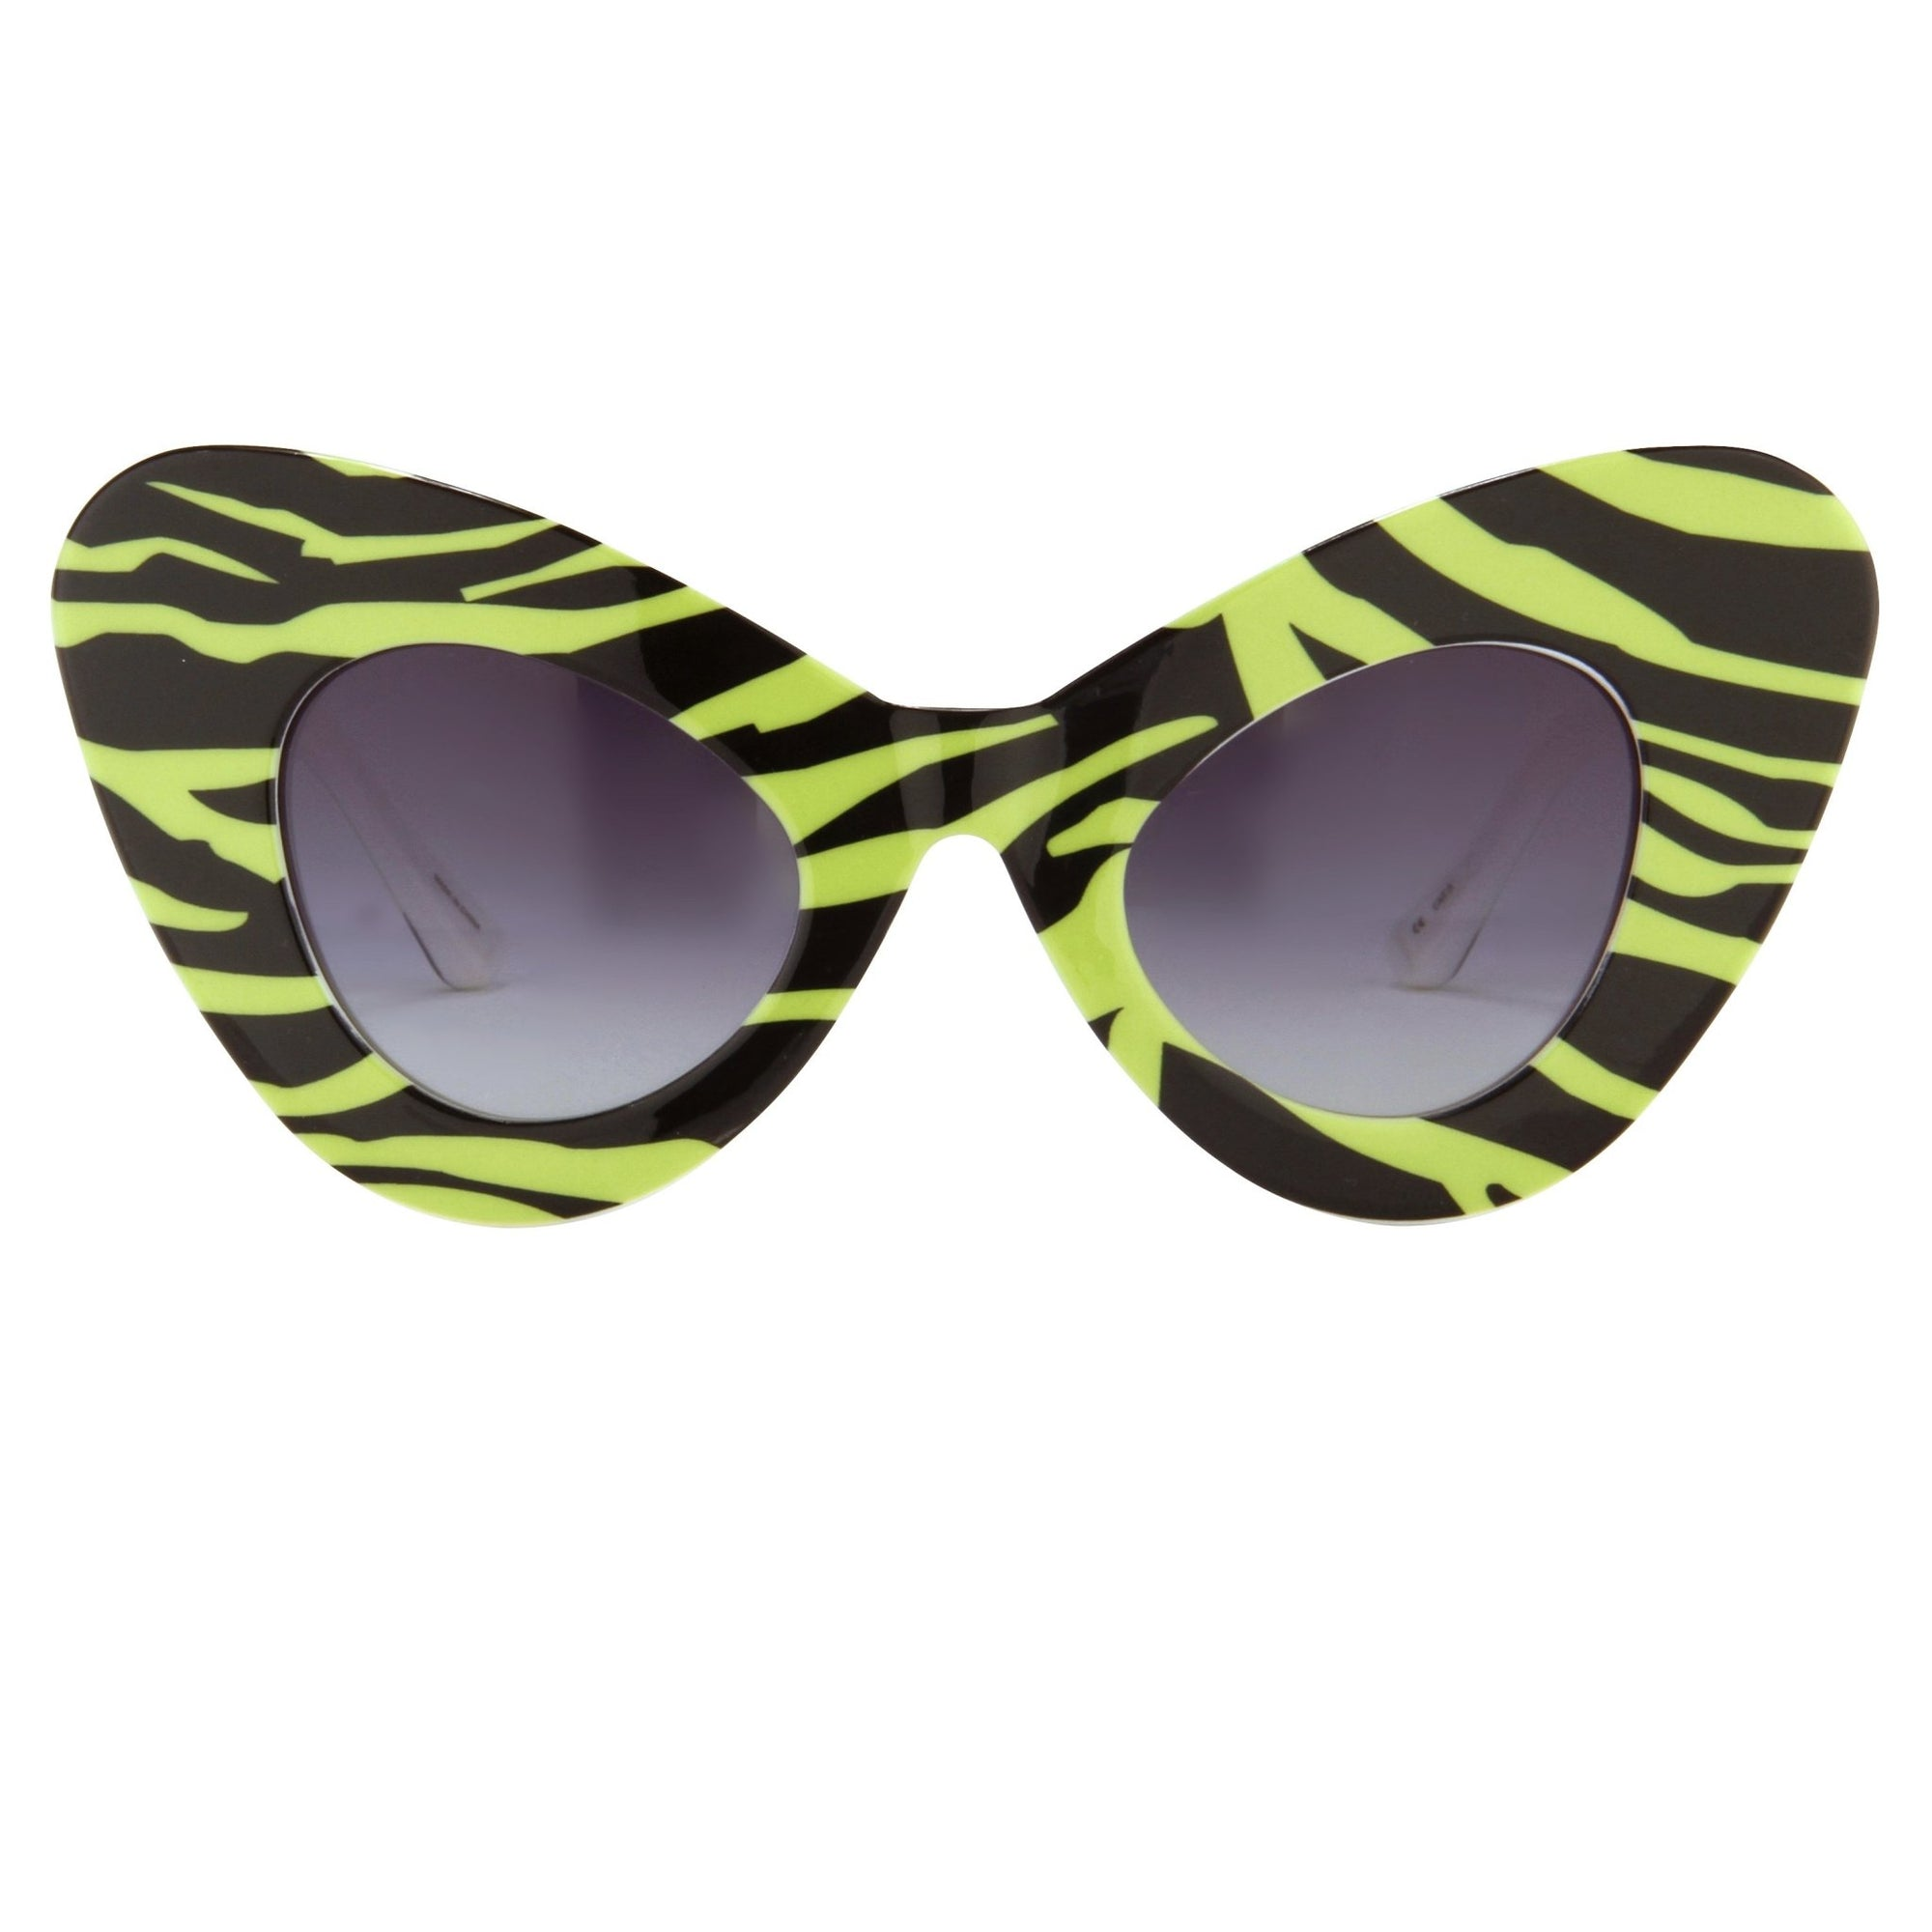 Jeremy Scott Sunglasses Cat Eye Green Zebra Prints With Grey Category 3 Graduated Lenses JSCATEYEC4SUN - Watches & Crystals